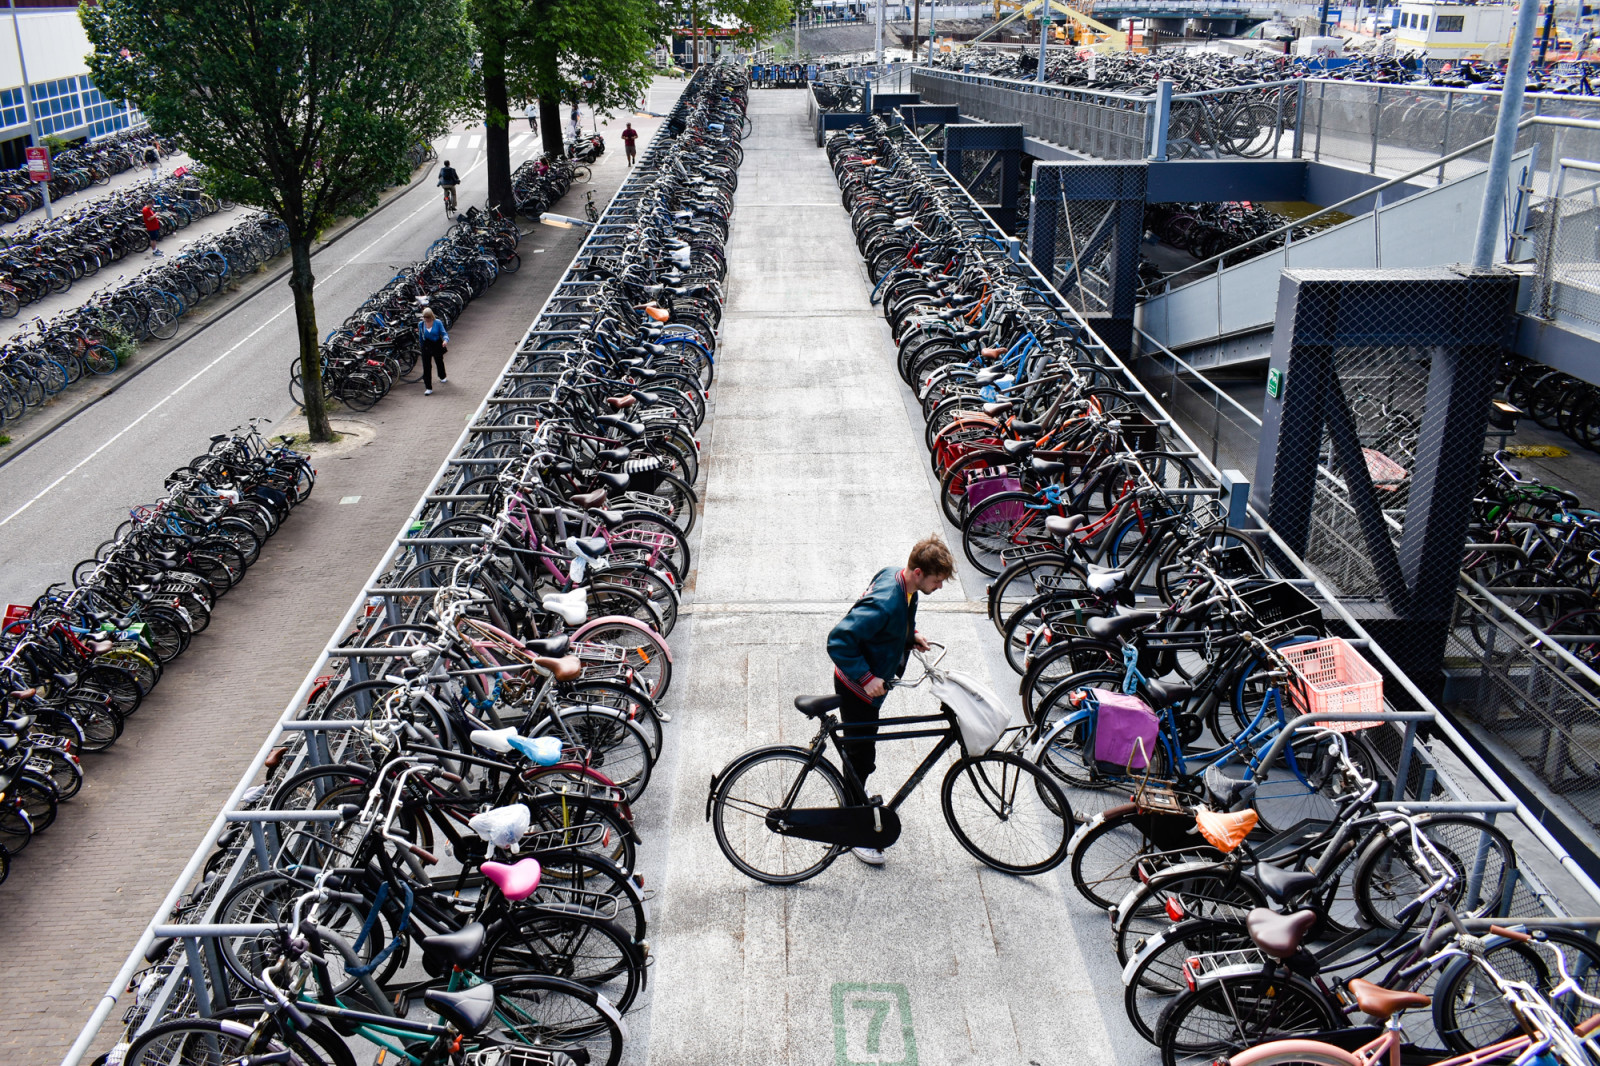 thousand-bikes-in-amsterdam